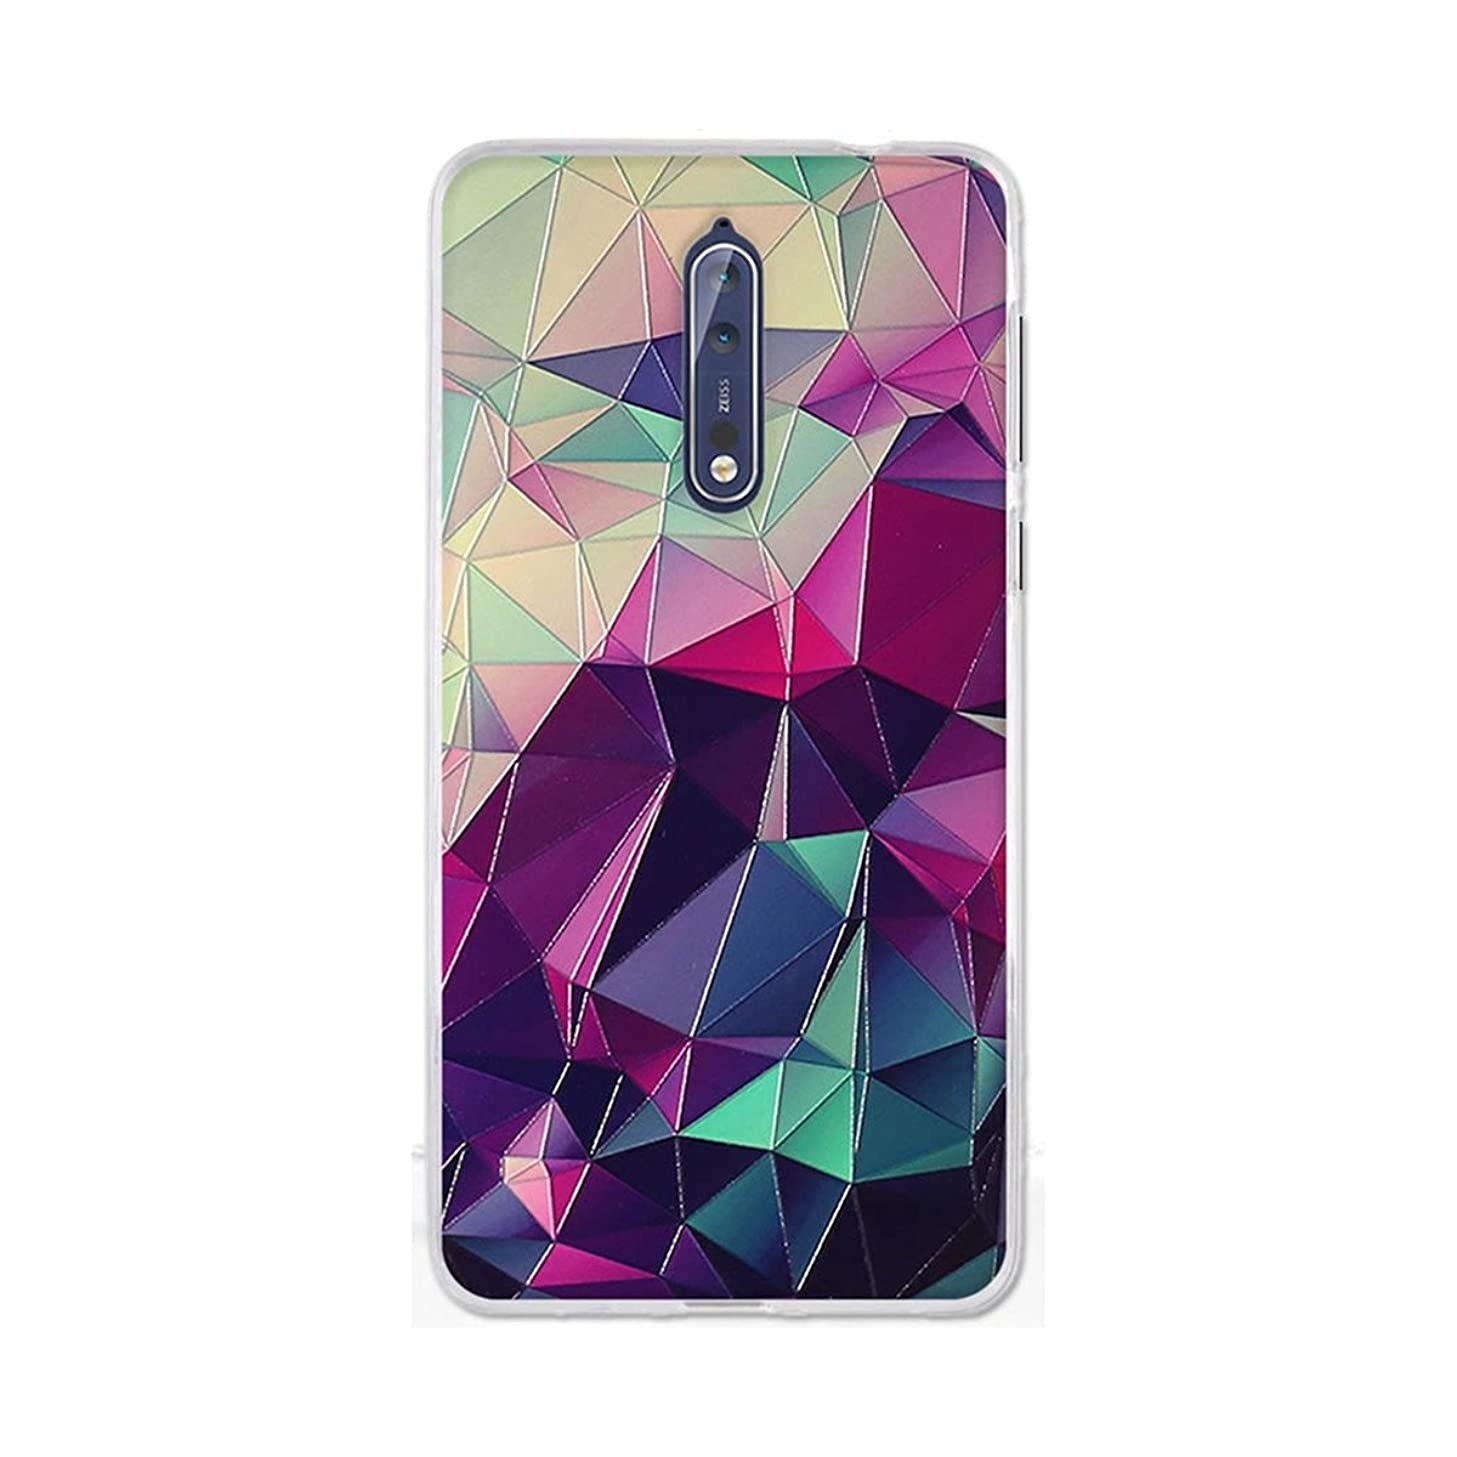 Nokia 8 Case,Gift_Source [Anti-Slip] Ultra Thin Protective Case Colorful 3D Emboss Print Soft TPU Rubber Cover Clear Shock-Absorbing Bumper For Nokia 8 (5.3 inch) [Colorful Cube]